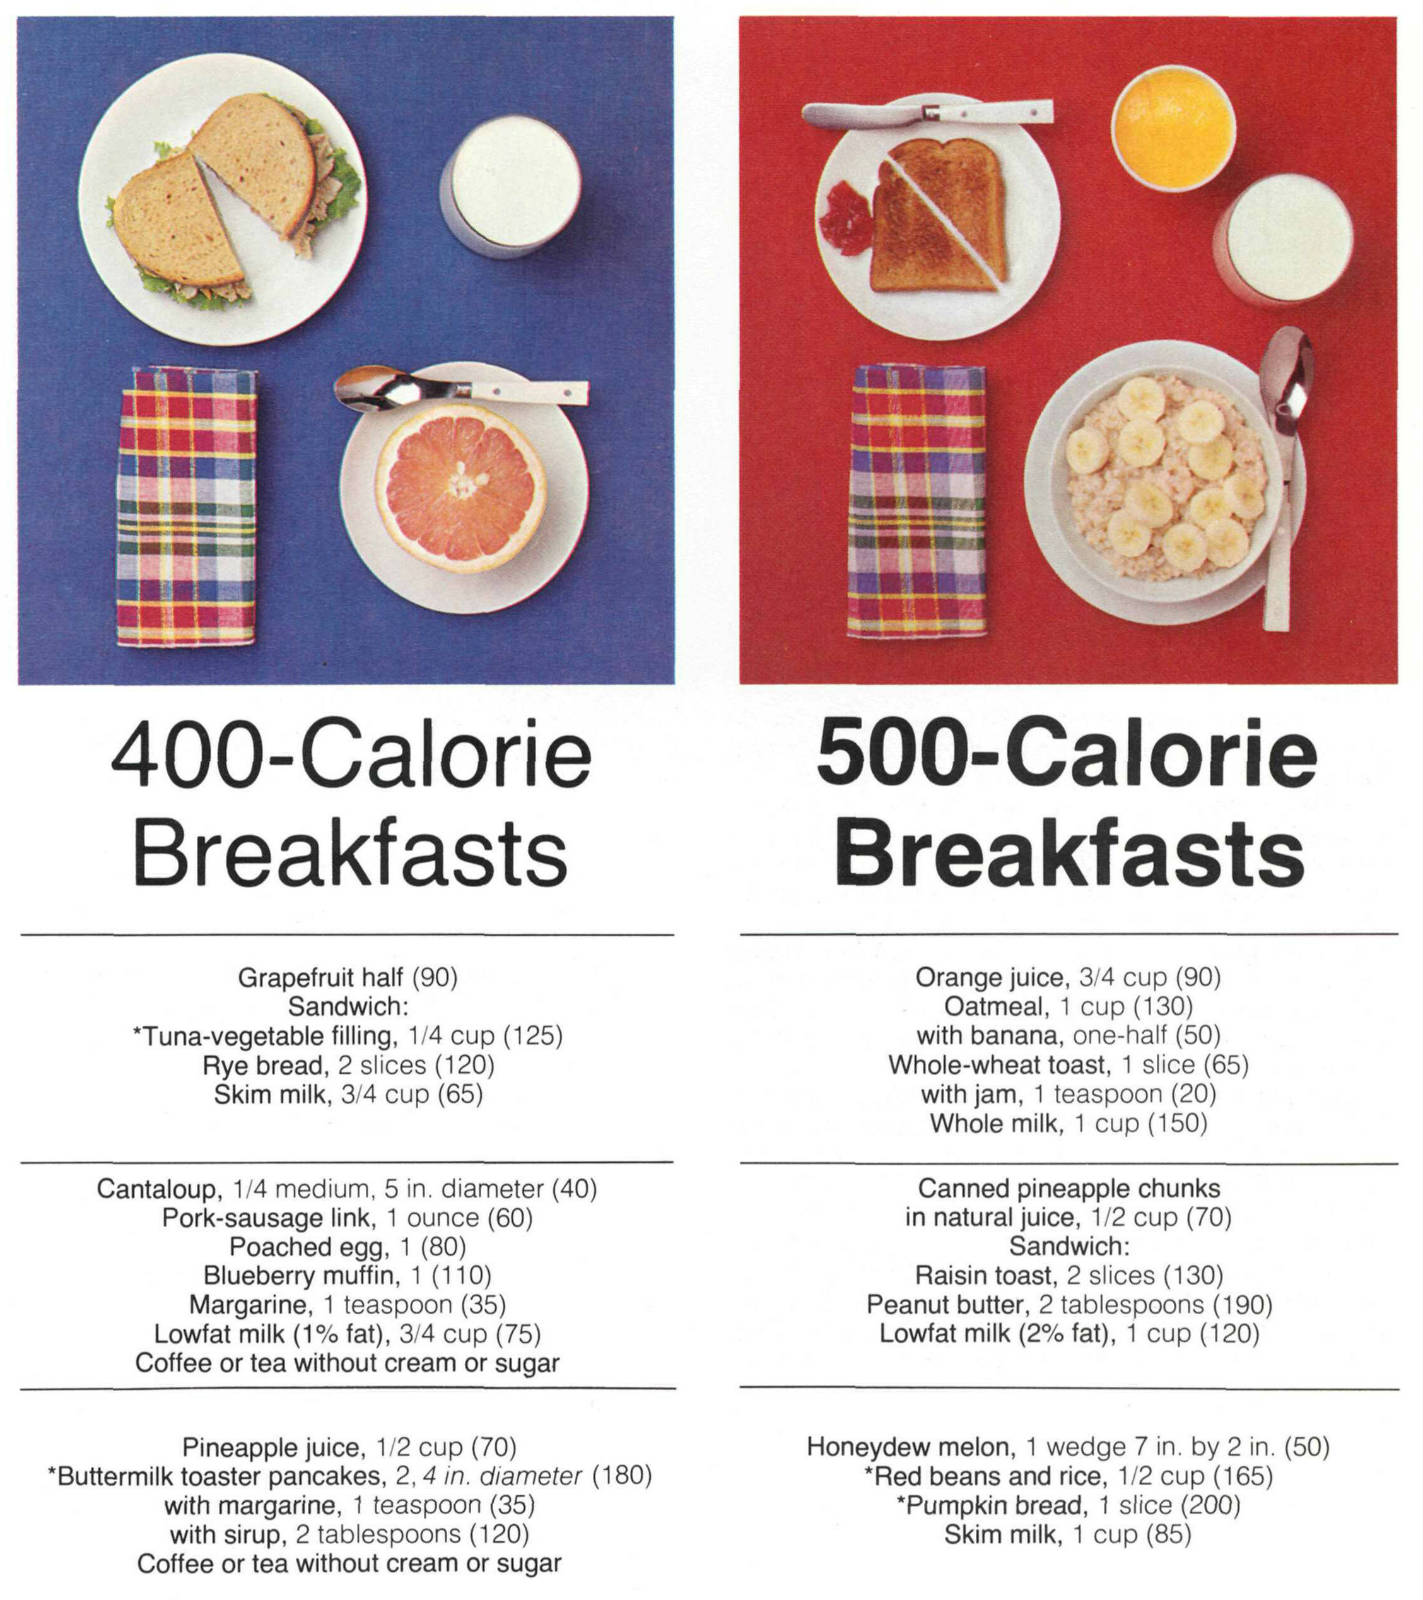 400-500-Calorie-Recipes.jpg